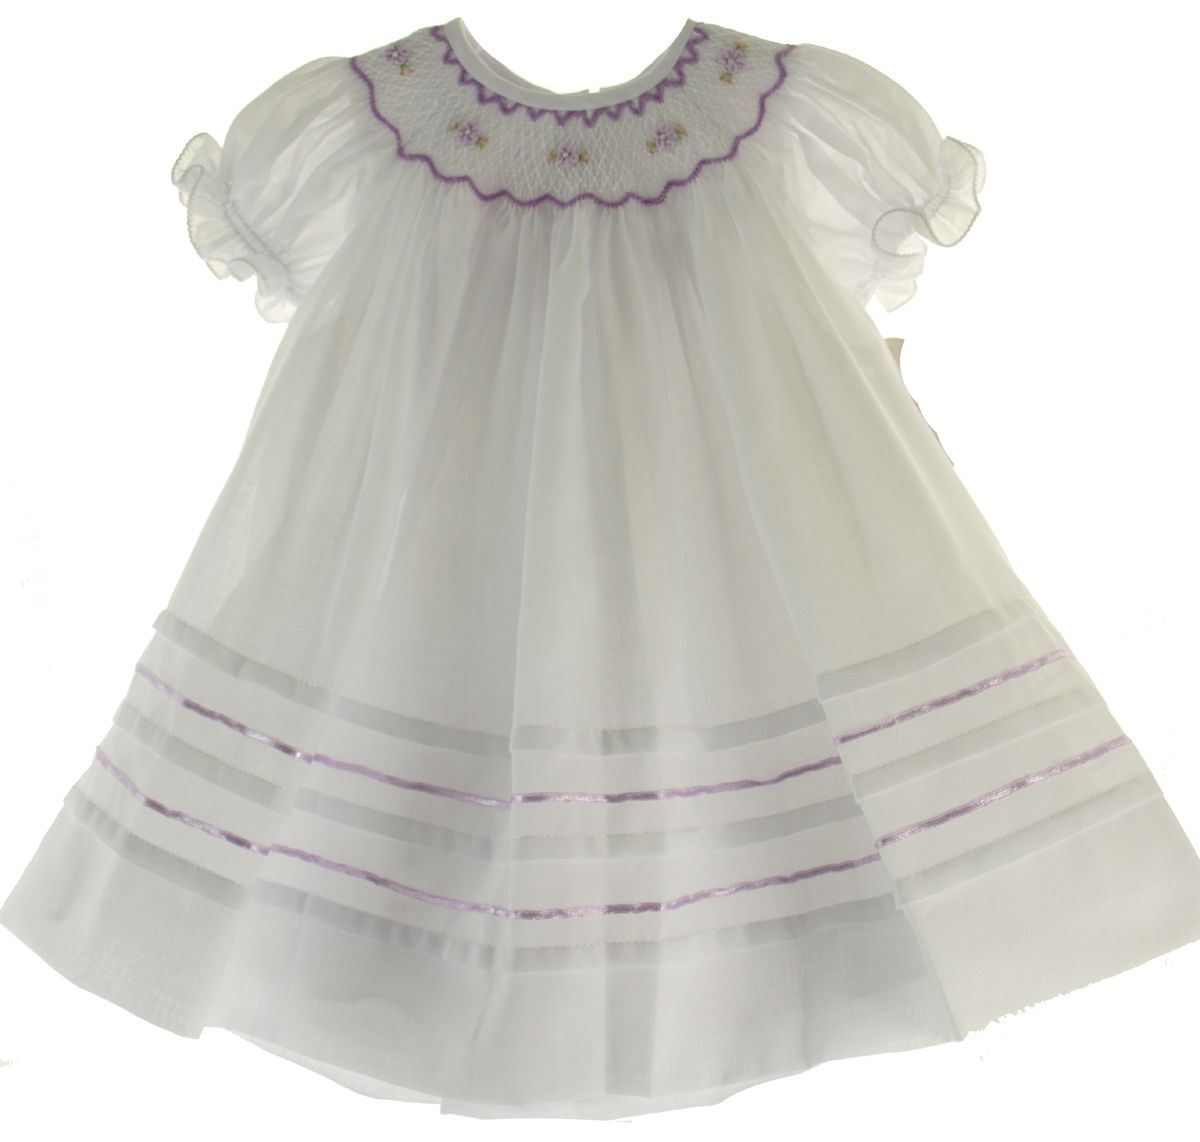 Hiccups Childrens Boutique - Baby Girls White Smocked Bishop Dress with Lavender Smocking Willbeth, $66.00 (http://www.hiccupschildrensboutique.com/baby-girls-white-smocked-bishop-dress-with-lavender-smocking-willbeth/)